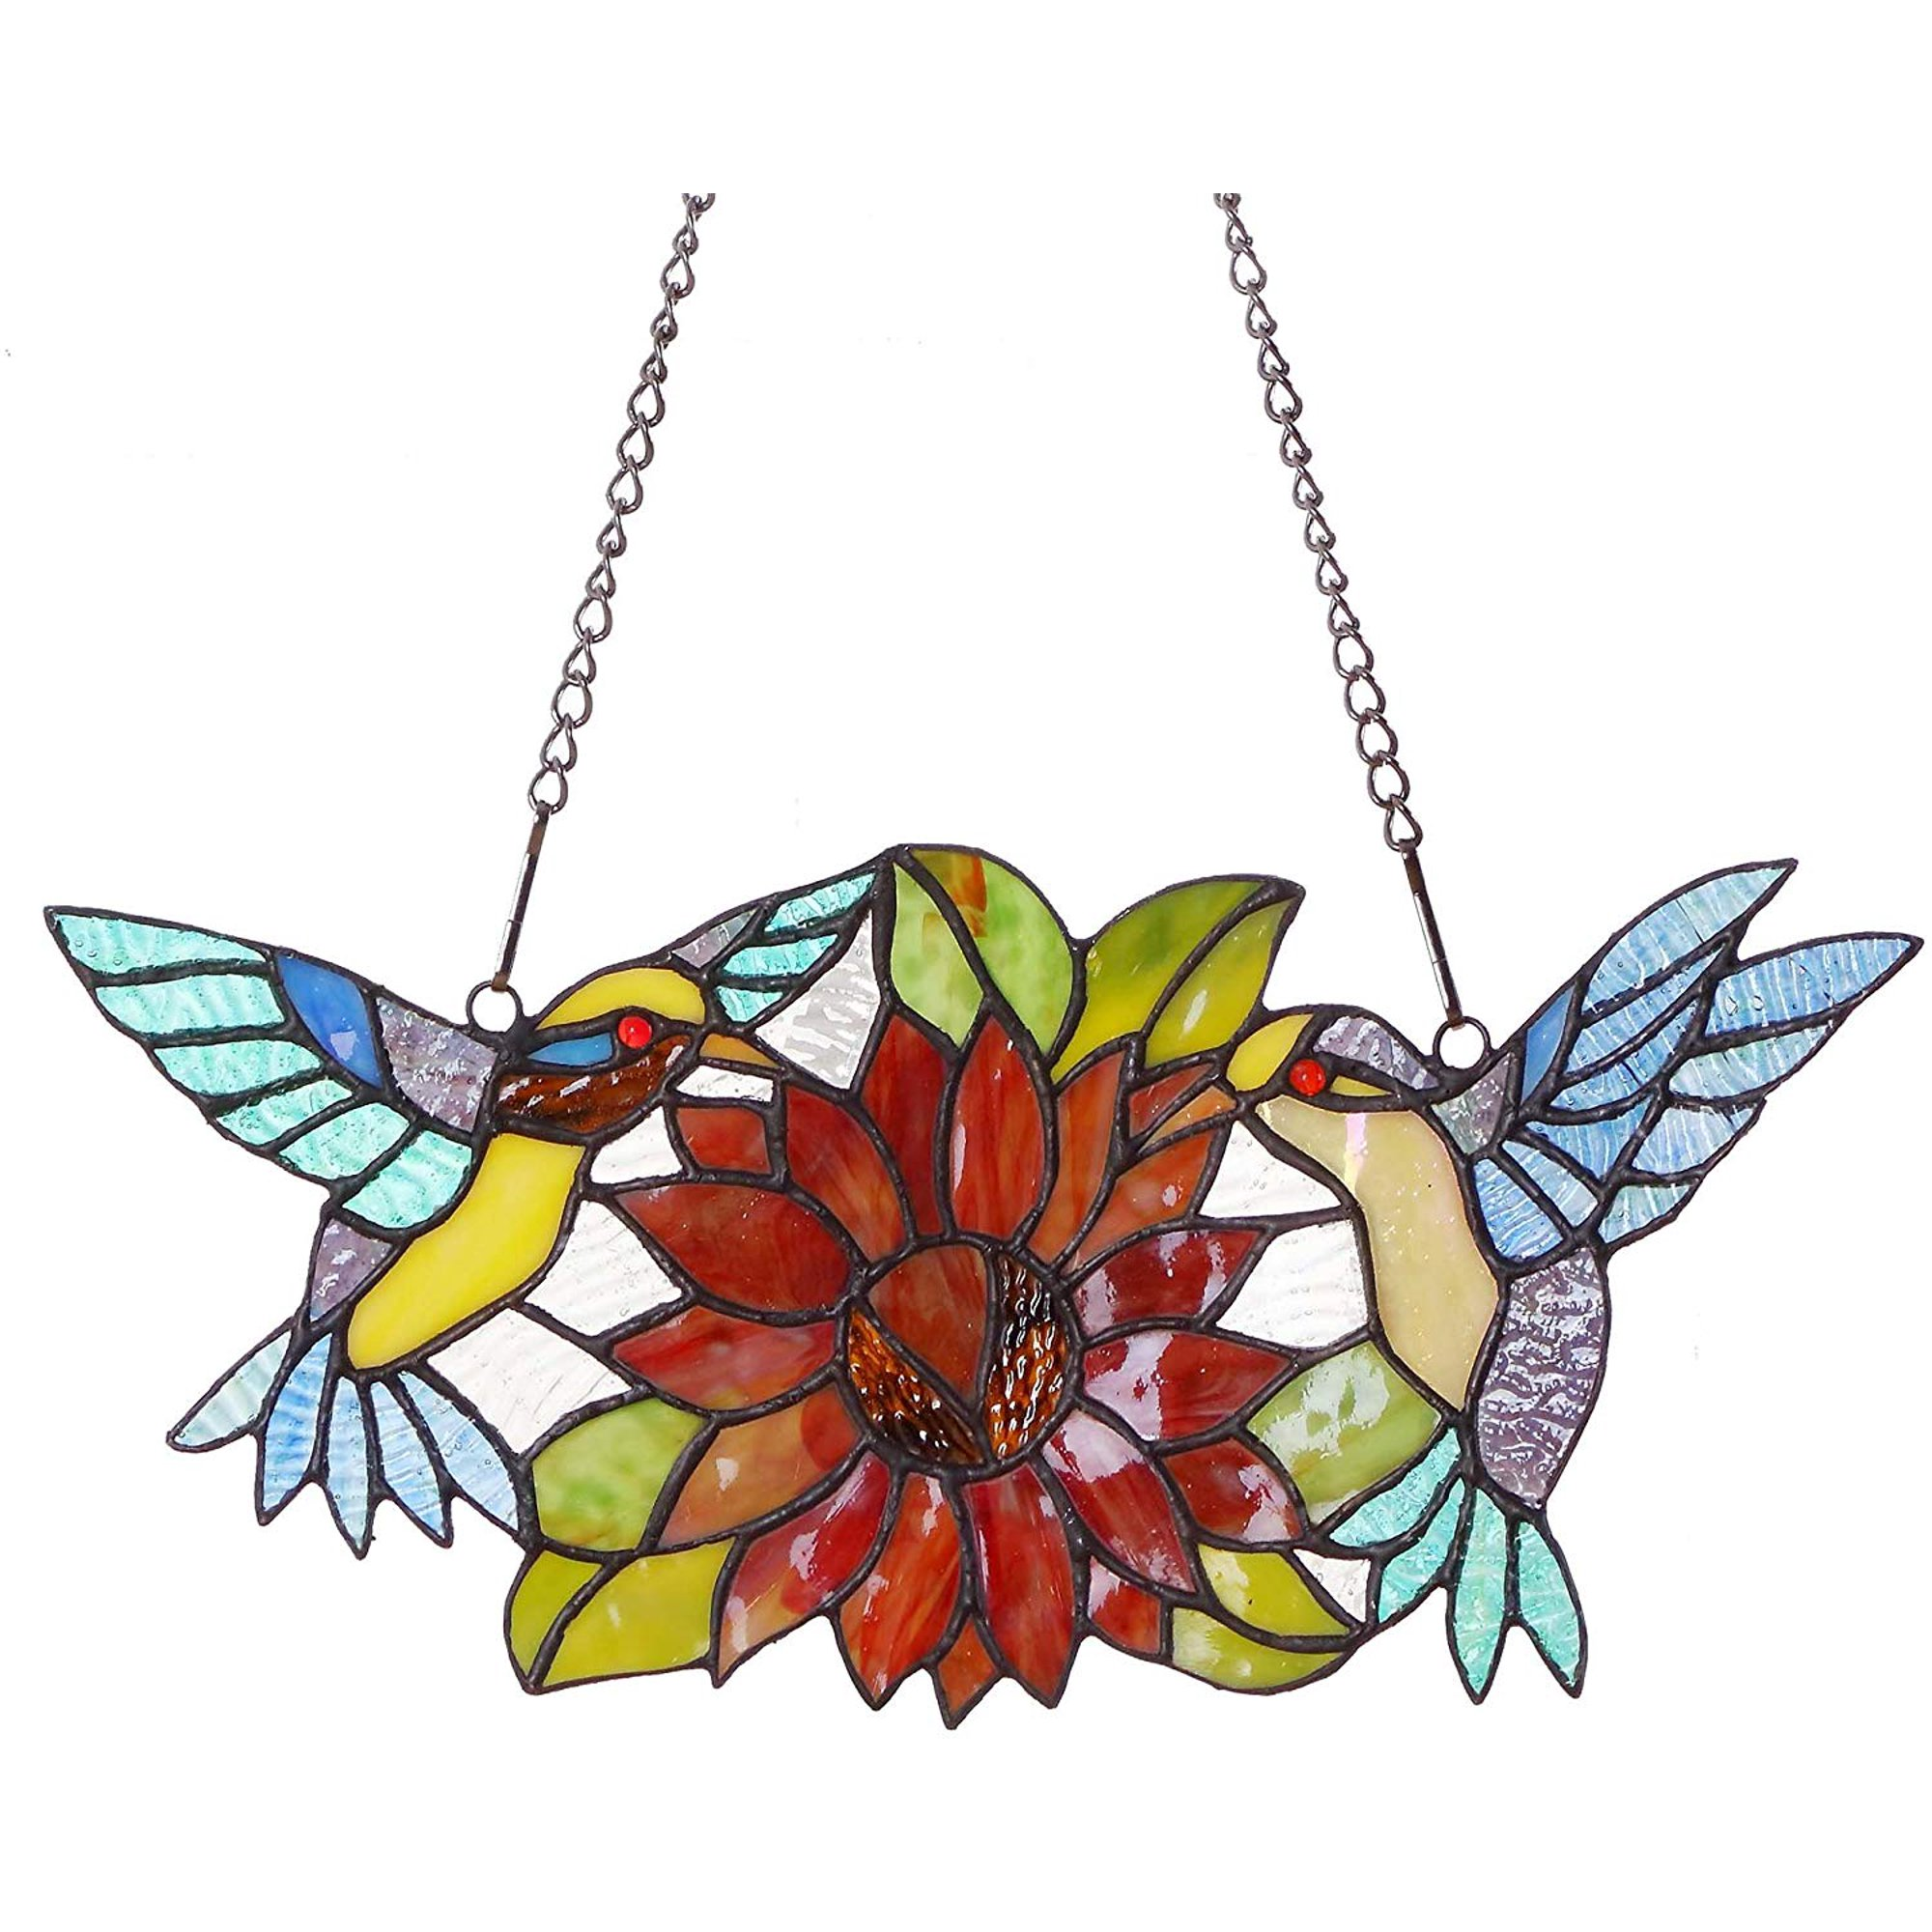 Bieye W10006 Hummingbirds Flower Tiffany Style Stained Glass Window Hangings Panel With Chain 15 W X 7 H Walmart Canada